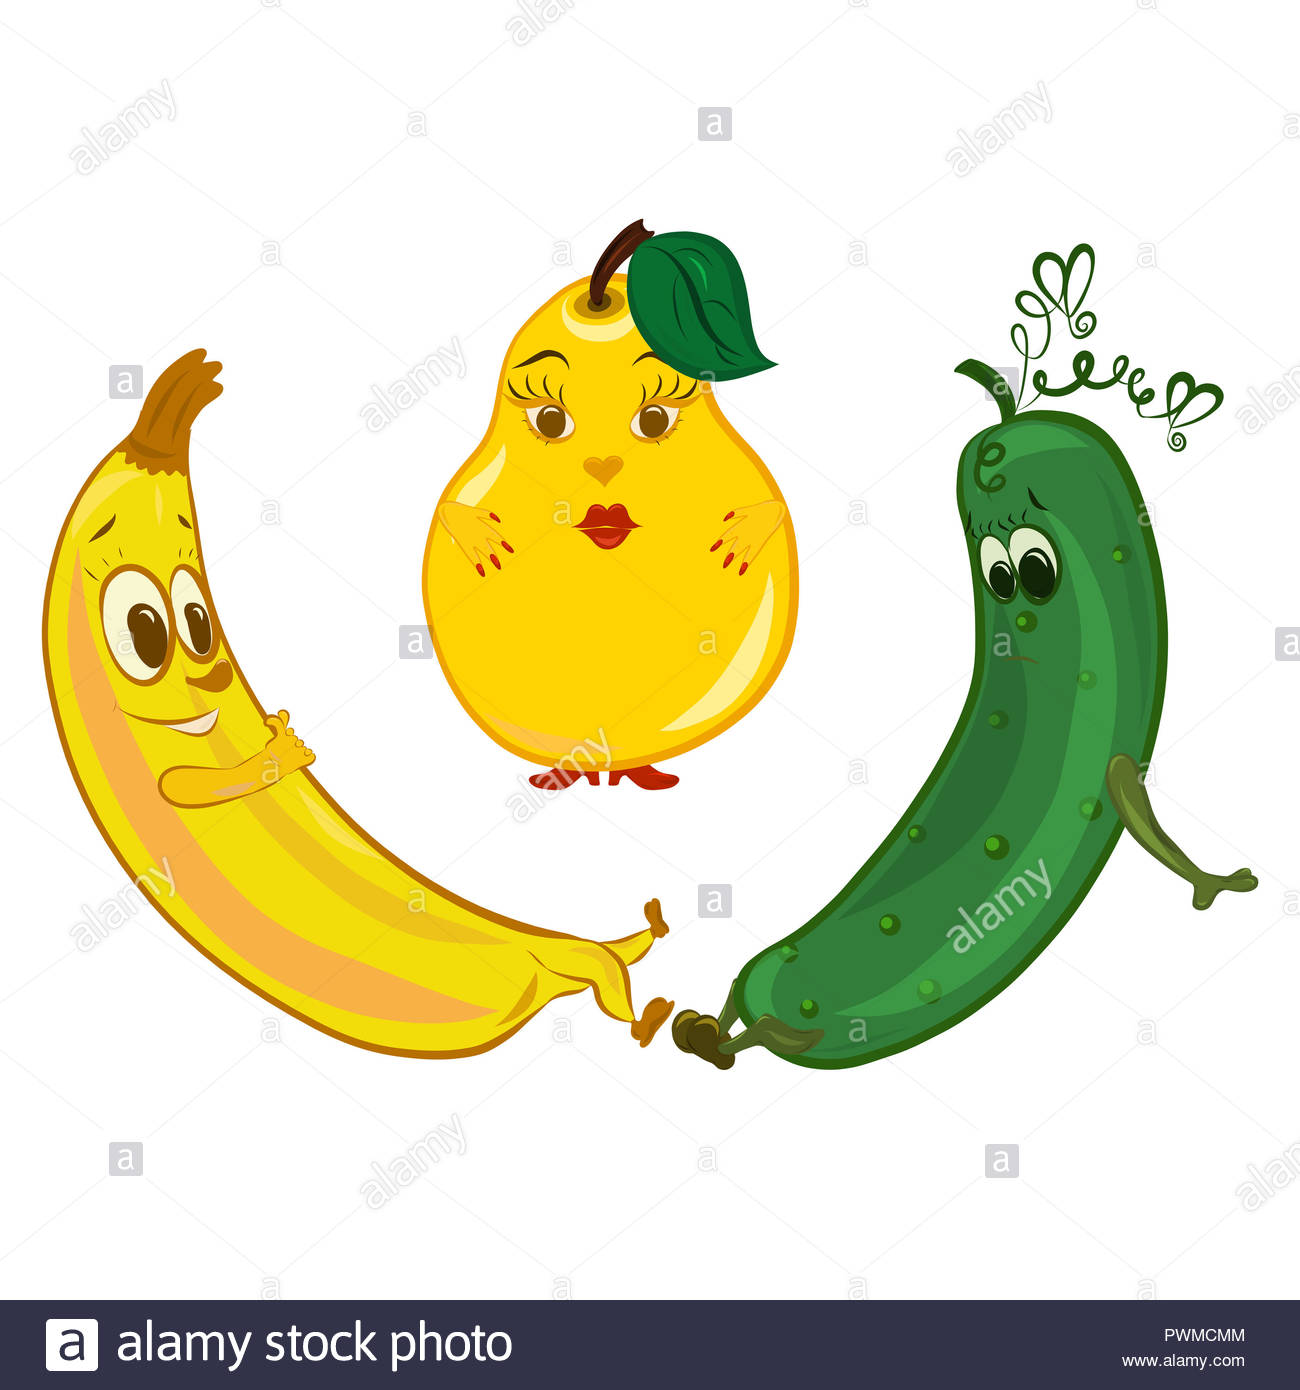 Jolly banana, sad cucumber and pear in between - Stock Image